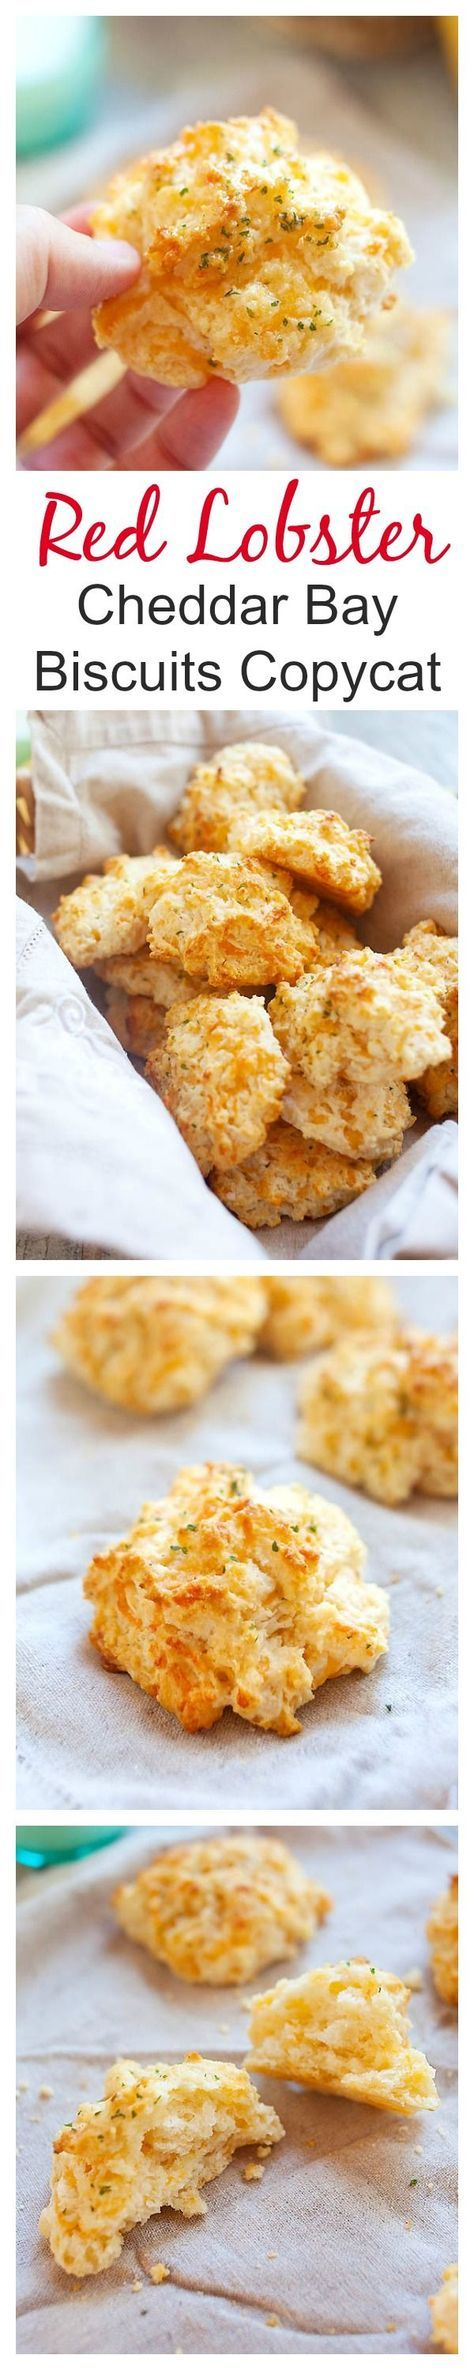 Red Lobster cheddar bay biscuits copycat recipe, close to the original Red Lobster cheddar bay biscuits. Crumbly, cheesy, and the best biscuits ever | rasamalaysia.com